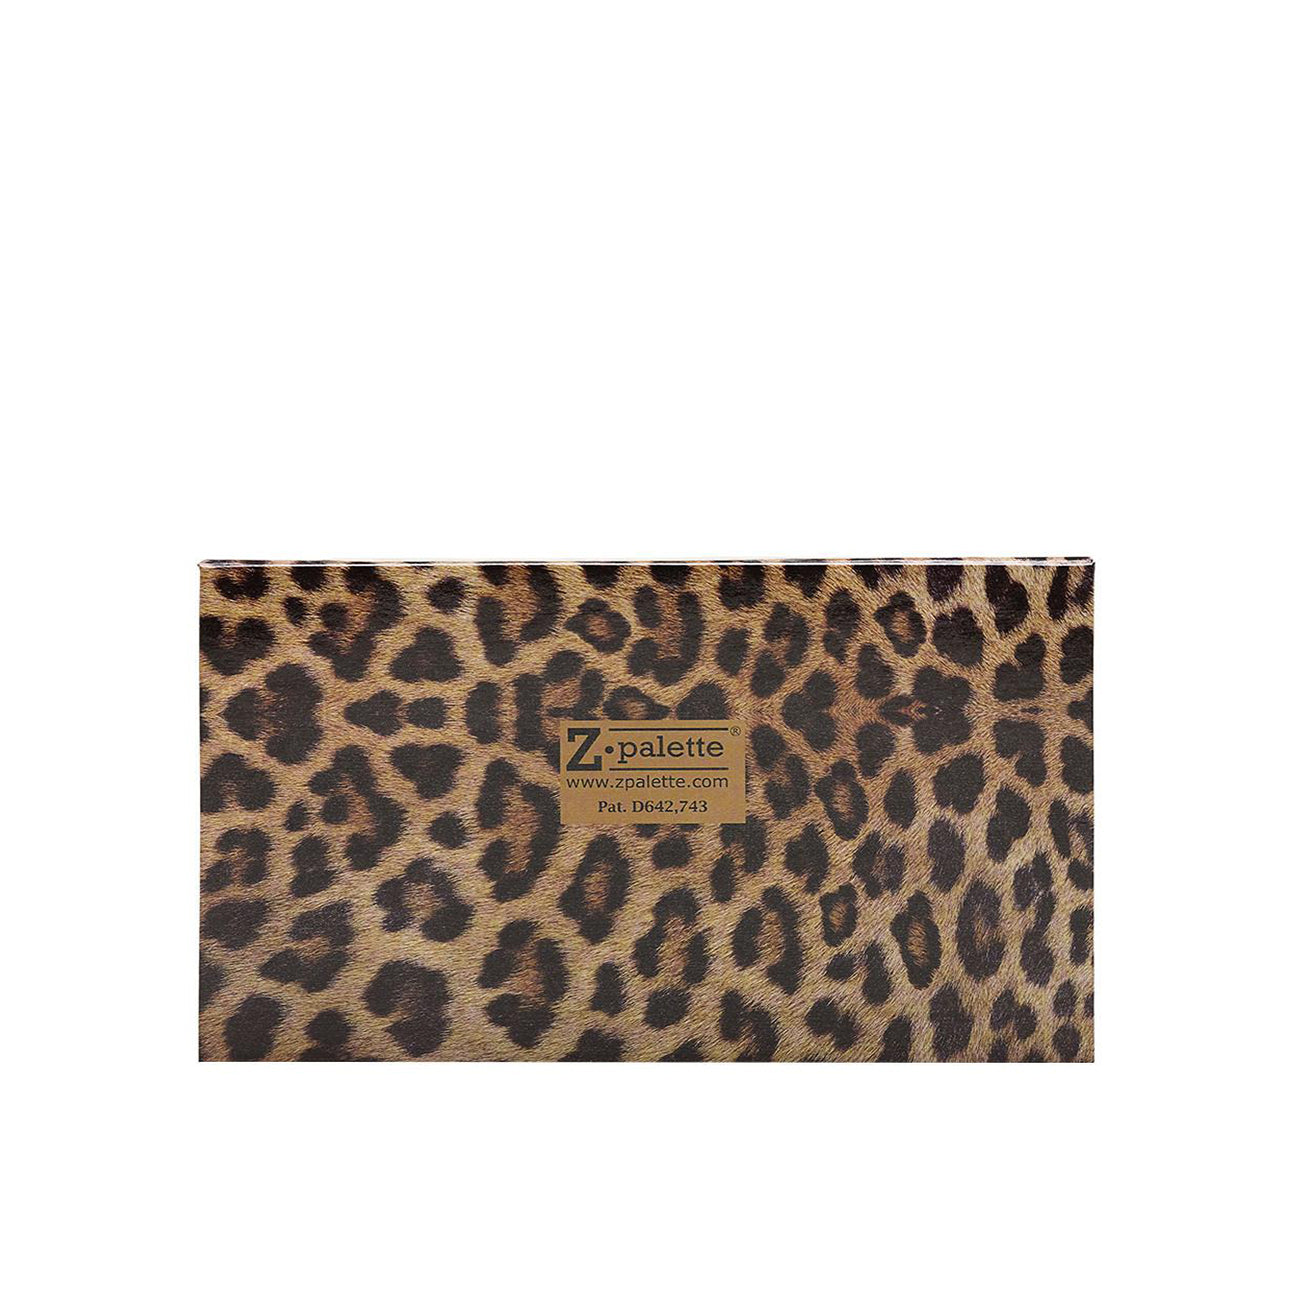 Empty Palette for Eyeshadows Large Leopard Z Palette